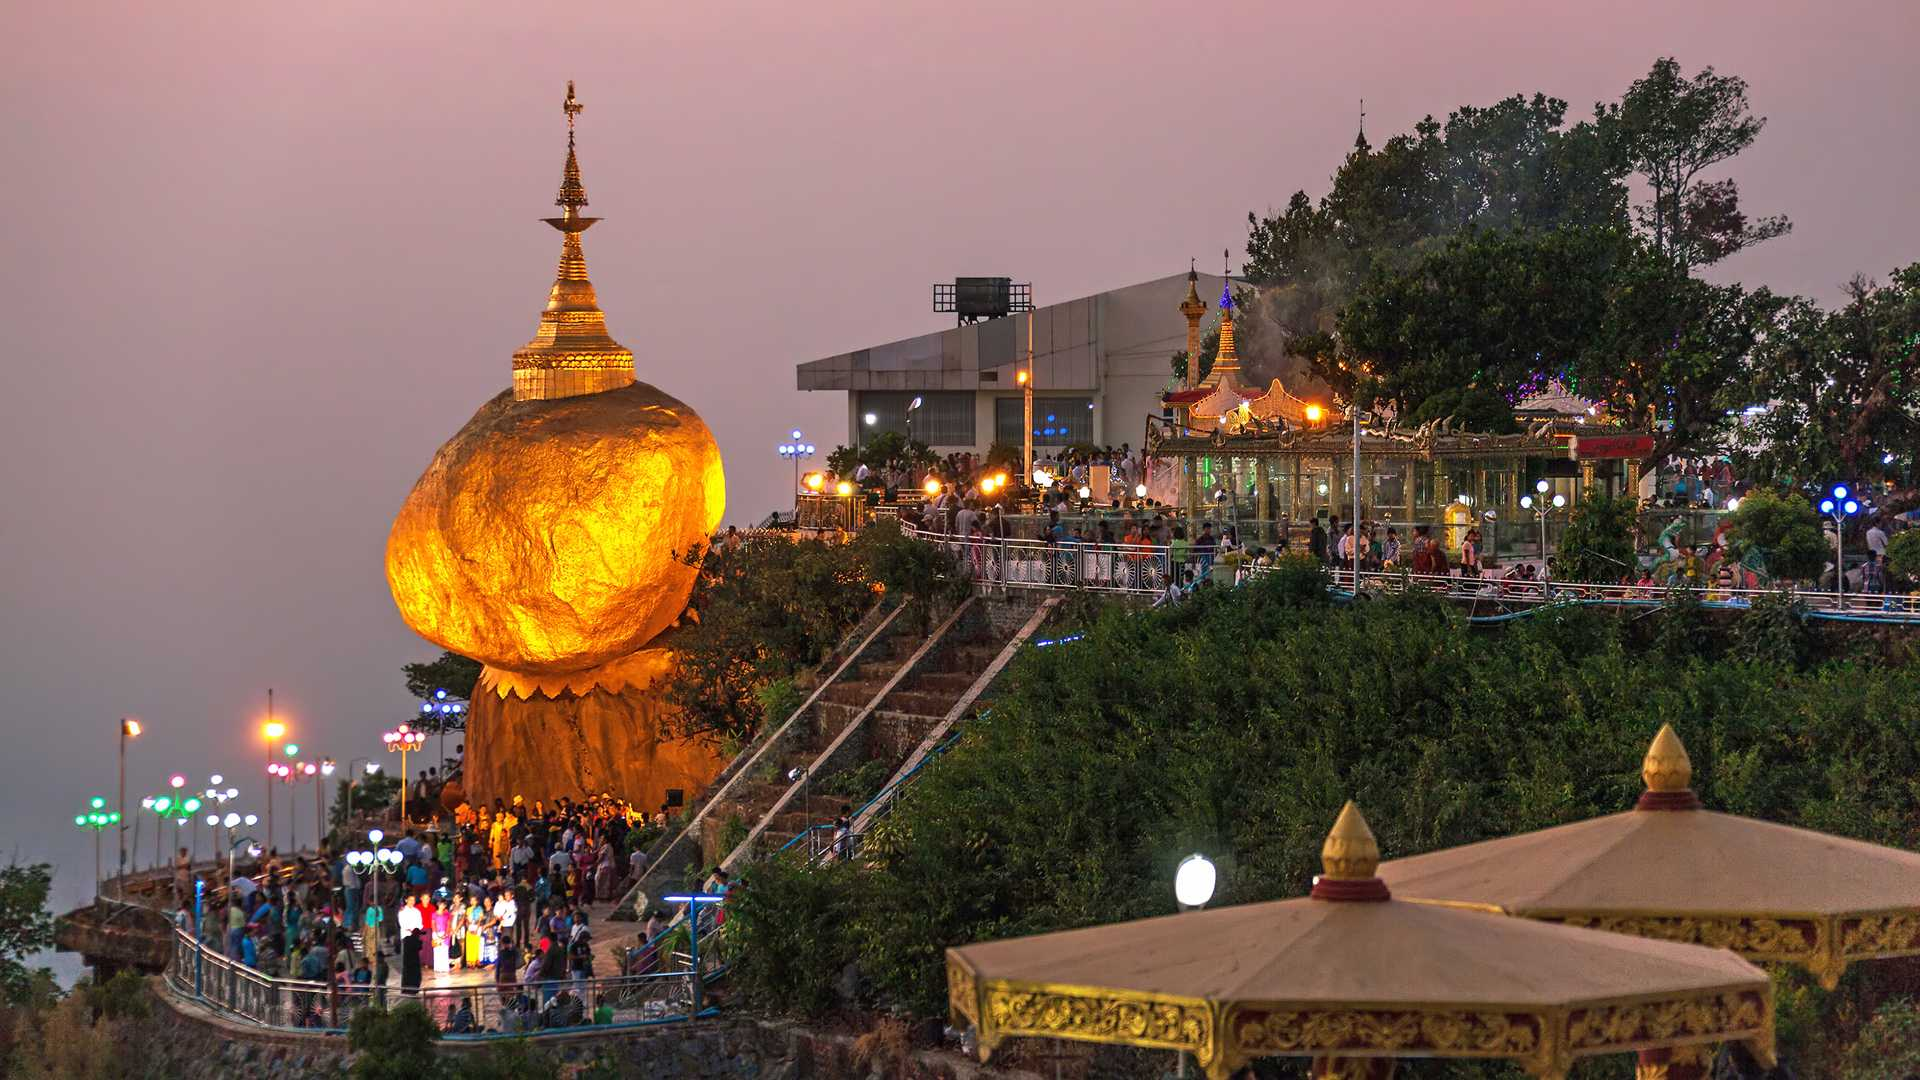 Myanmar_Golden-Rock_Golden-Rock-at-twilight-with-praying-people-and-tourists-71014